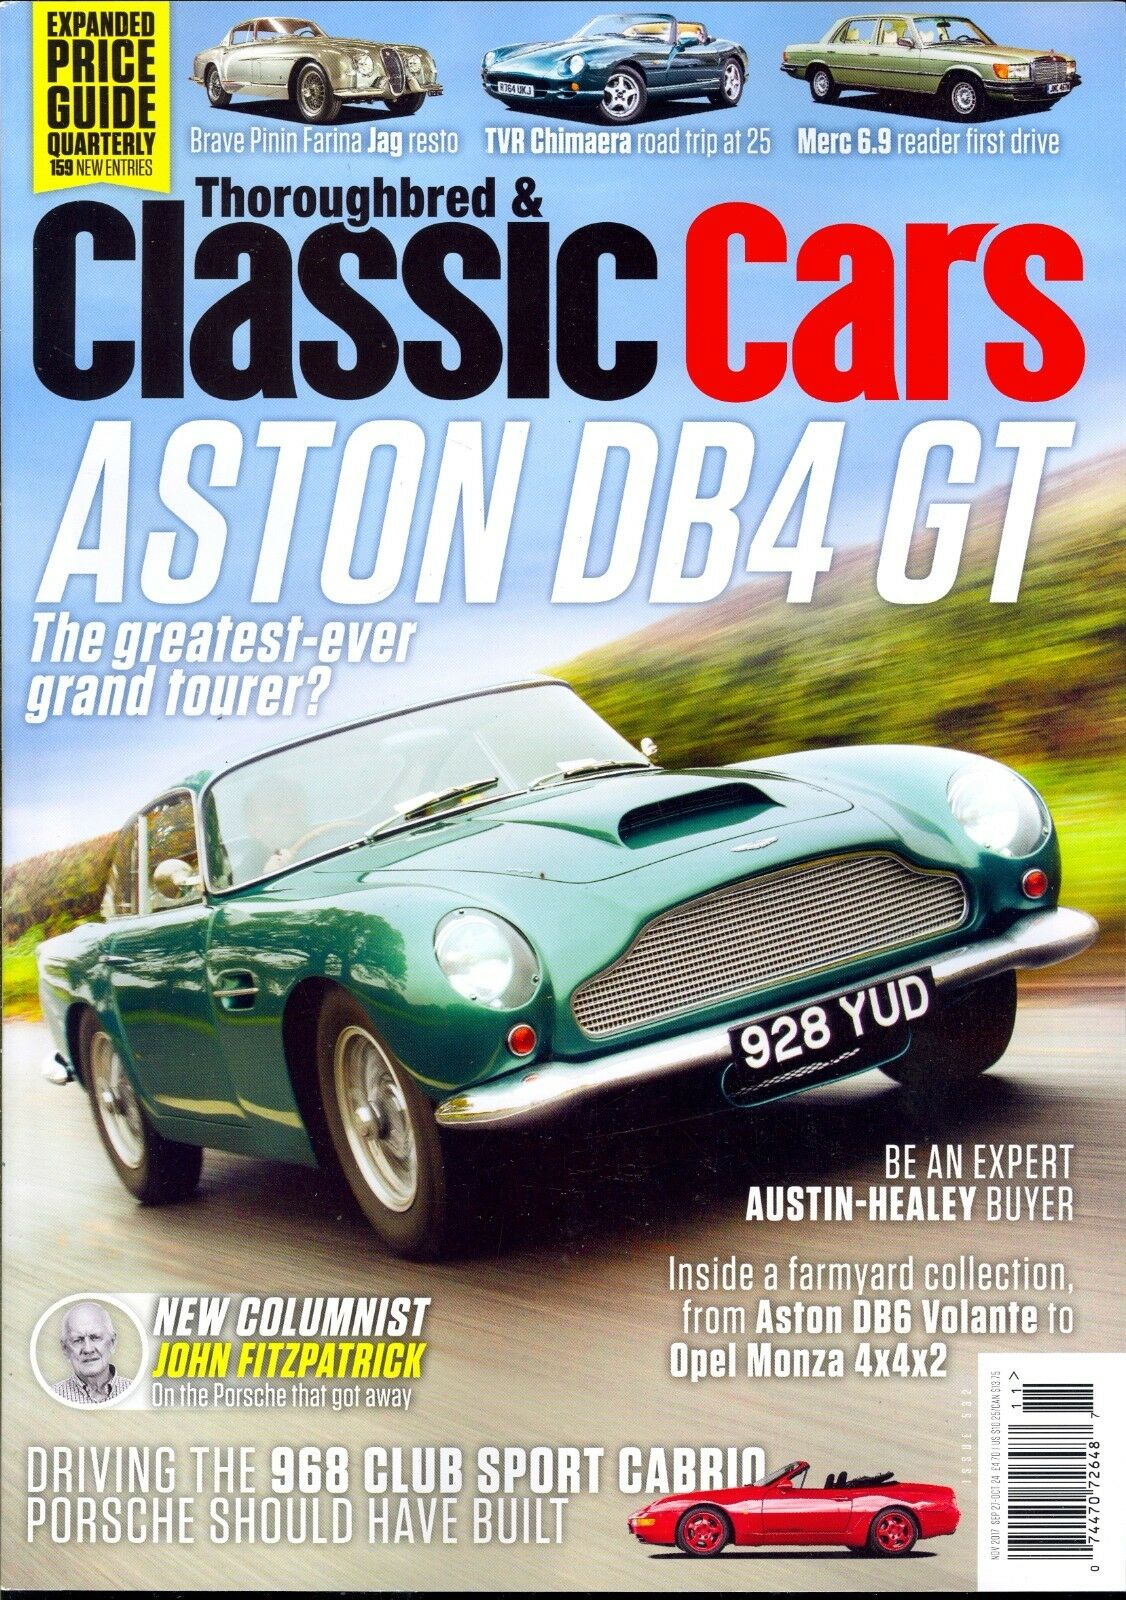 Thoroughbred & Classic Cars April 2017 Hot Convertibles | eBay